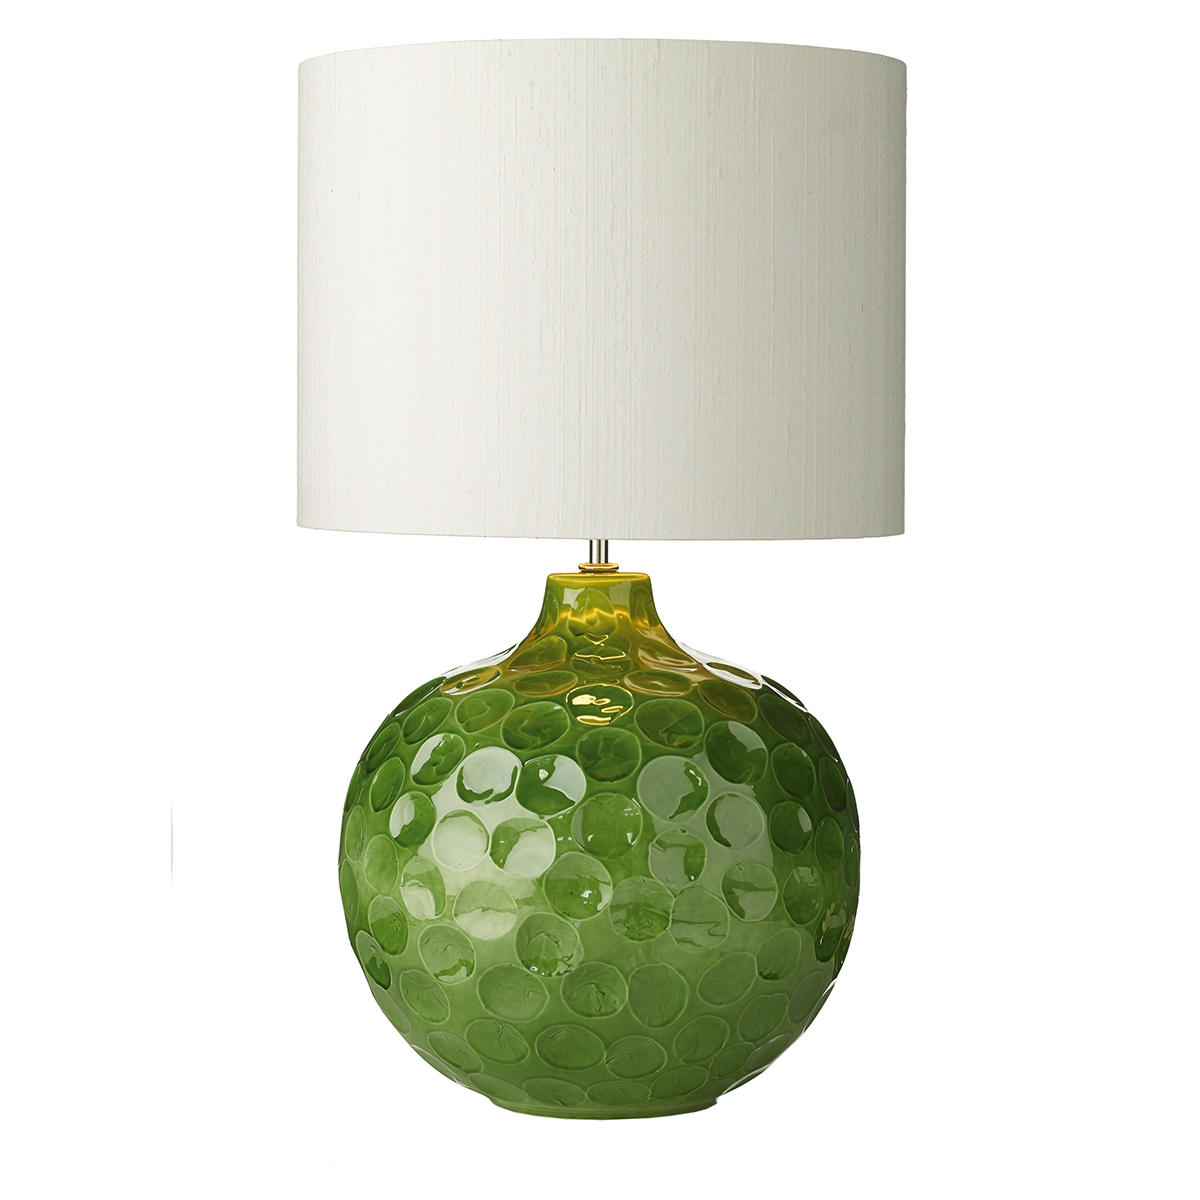 Odyssey green ceramic table lamp